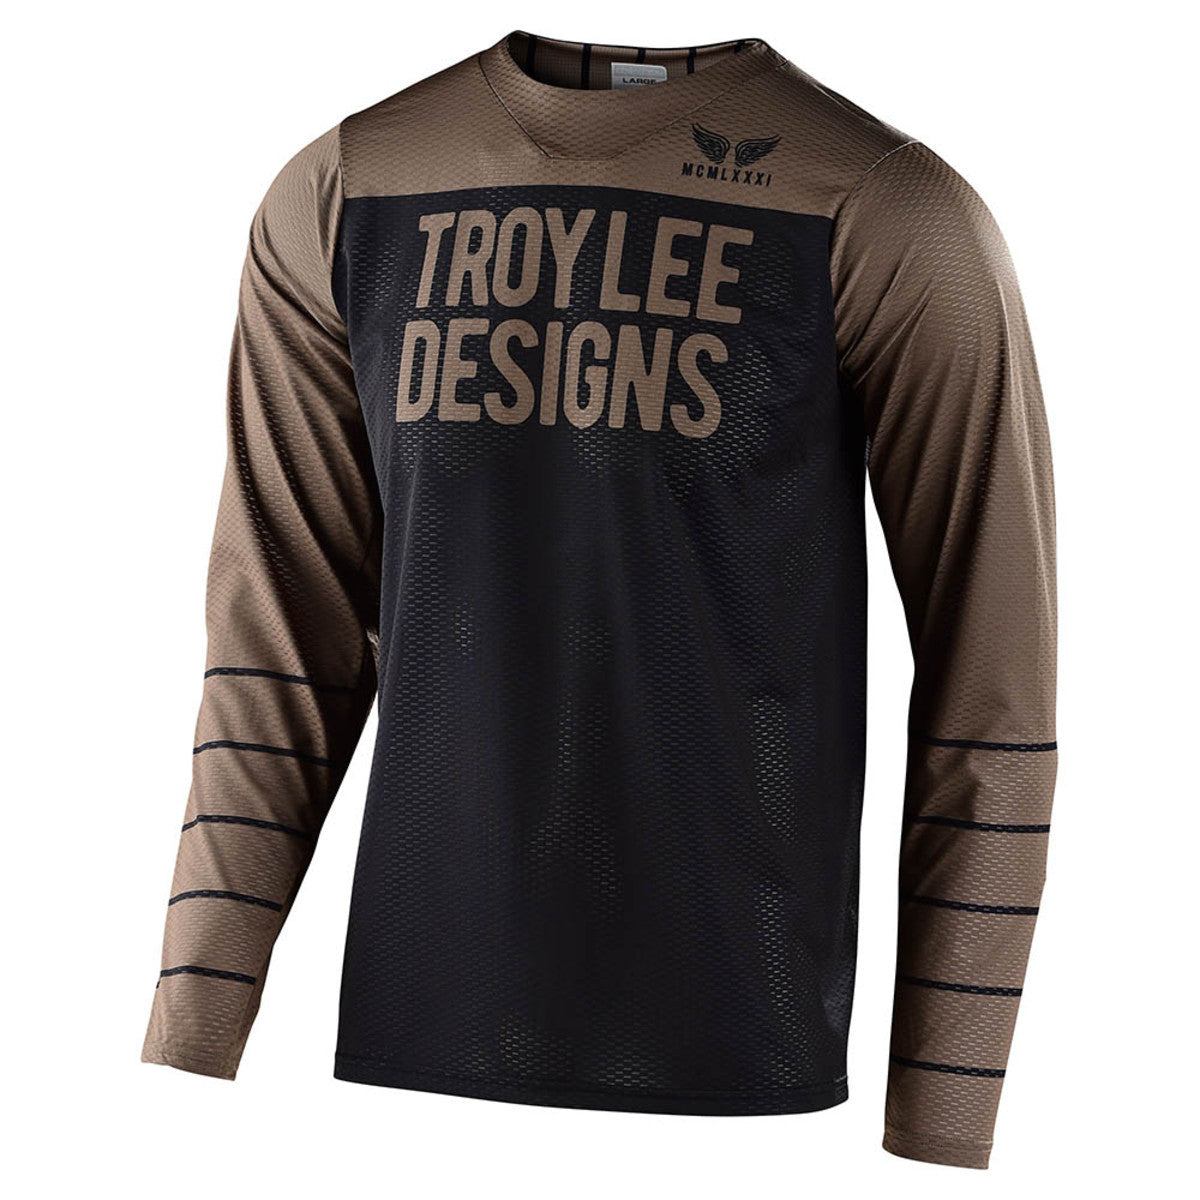 SKYLINE AIR LS JERSEY; PINSTRIPE BLACK / WALNUT MD